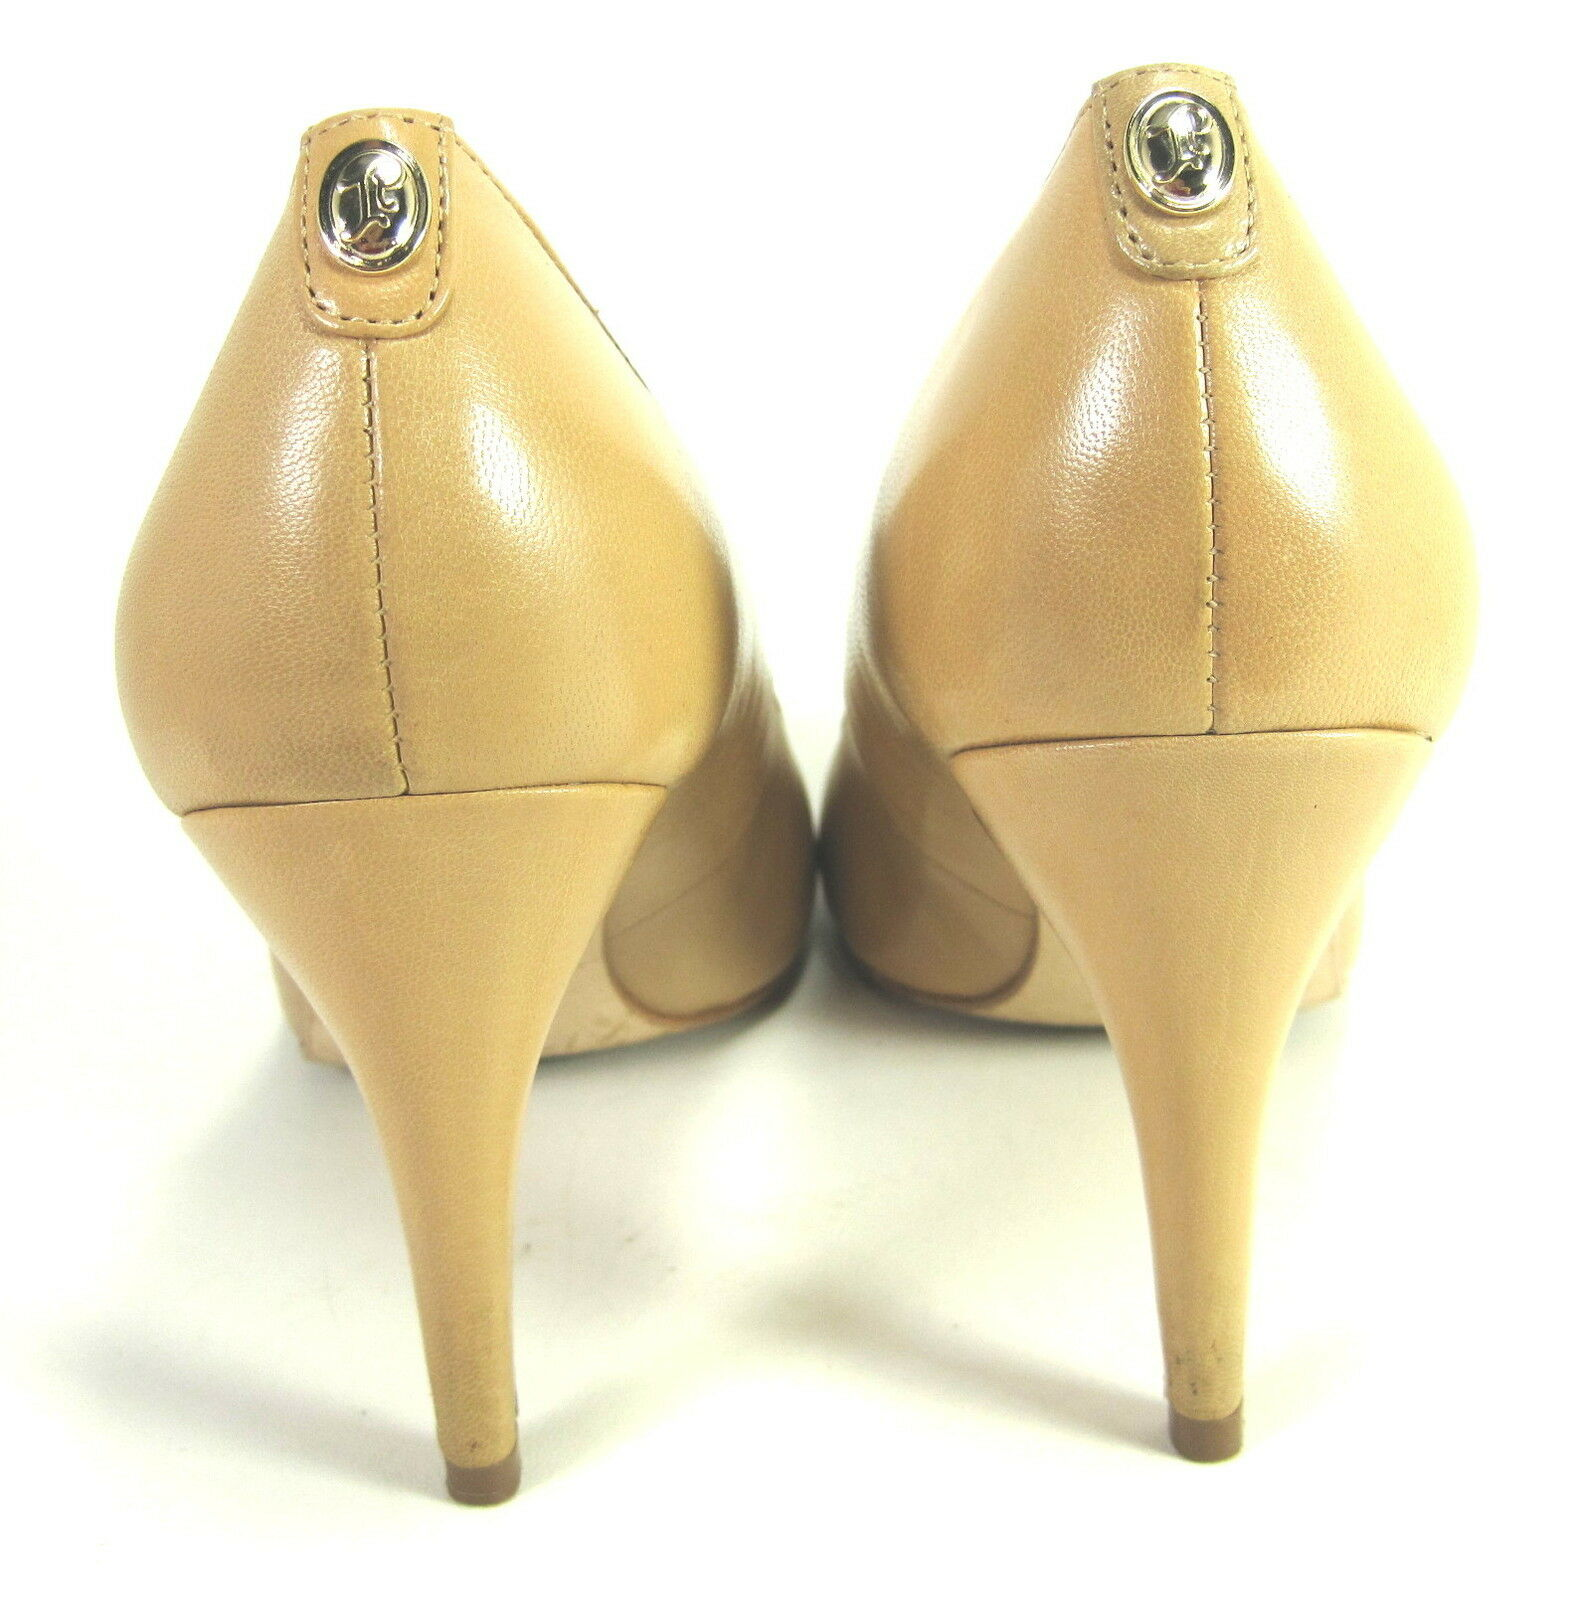 IVANKA TRUMP damen  AMGold AMGold AMGold  PUMPS LIGHT NATURAL LEATHER US Größe 7.5 MEDIUM (B)M 8c7af1